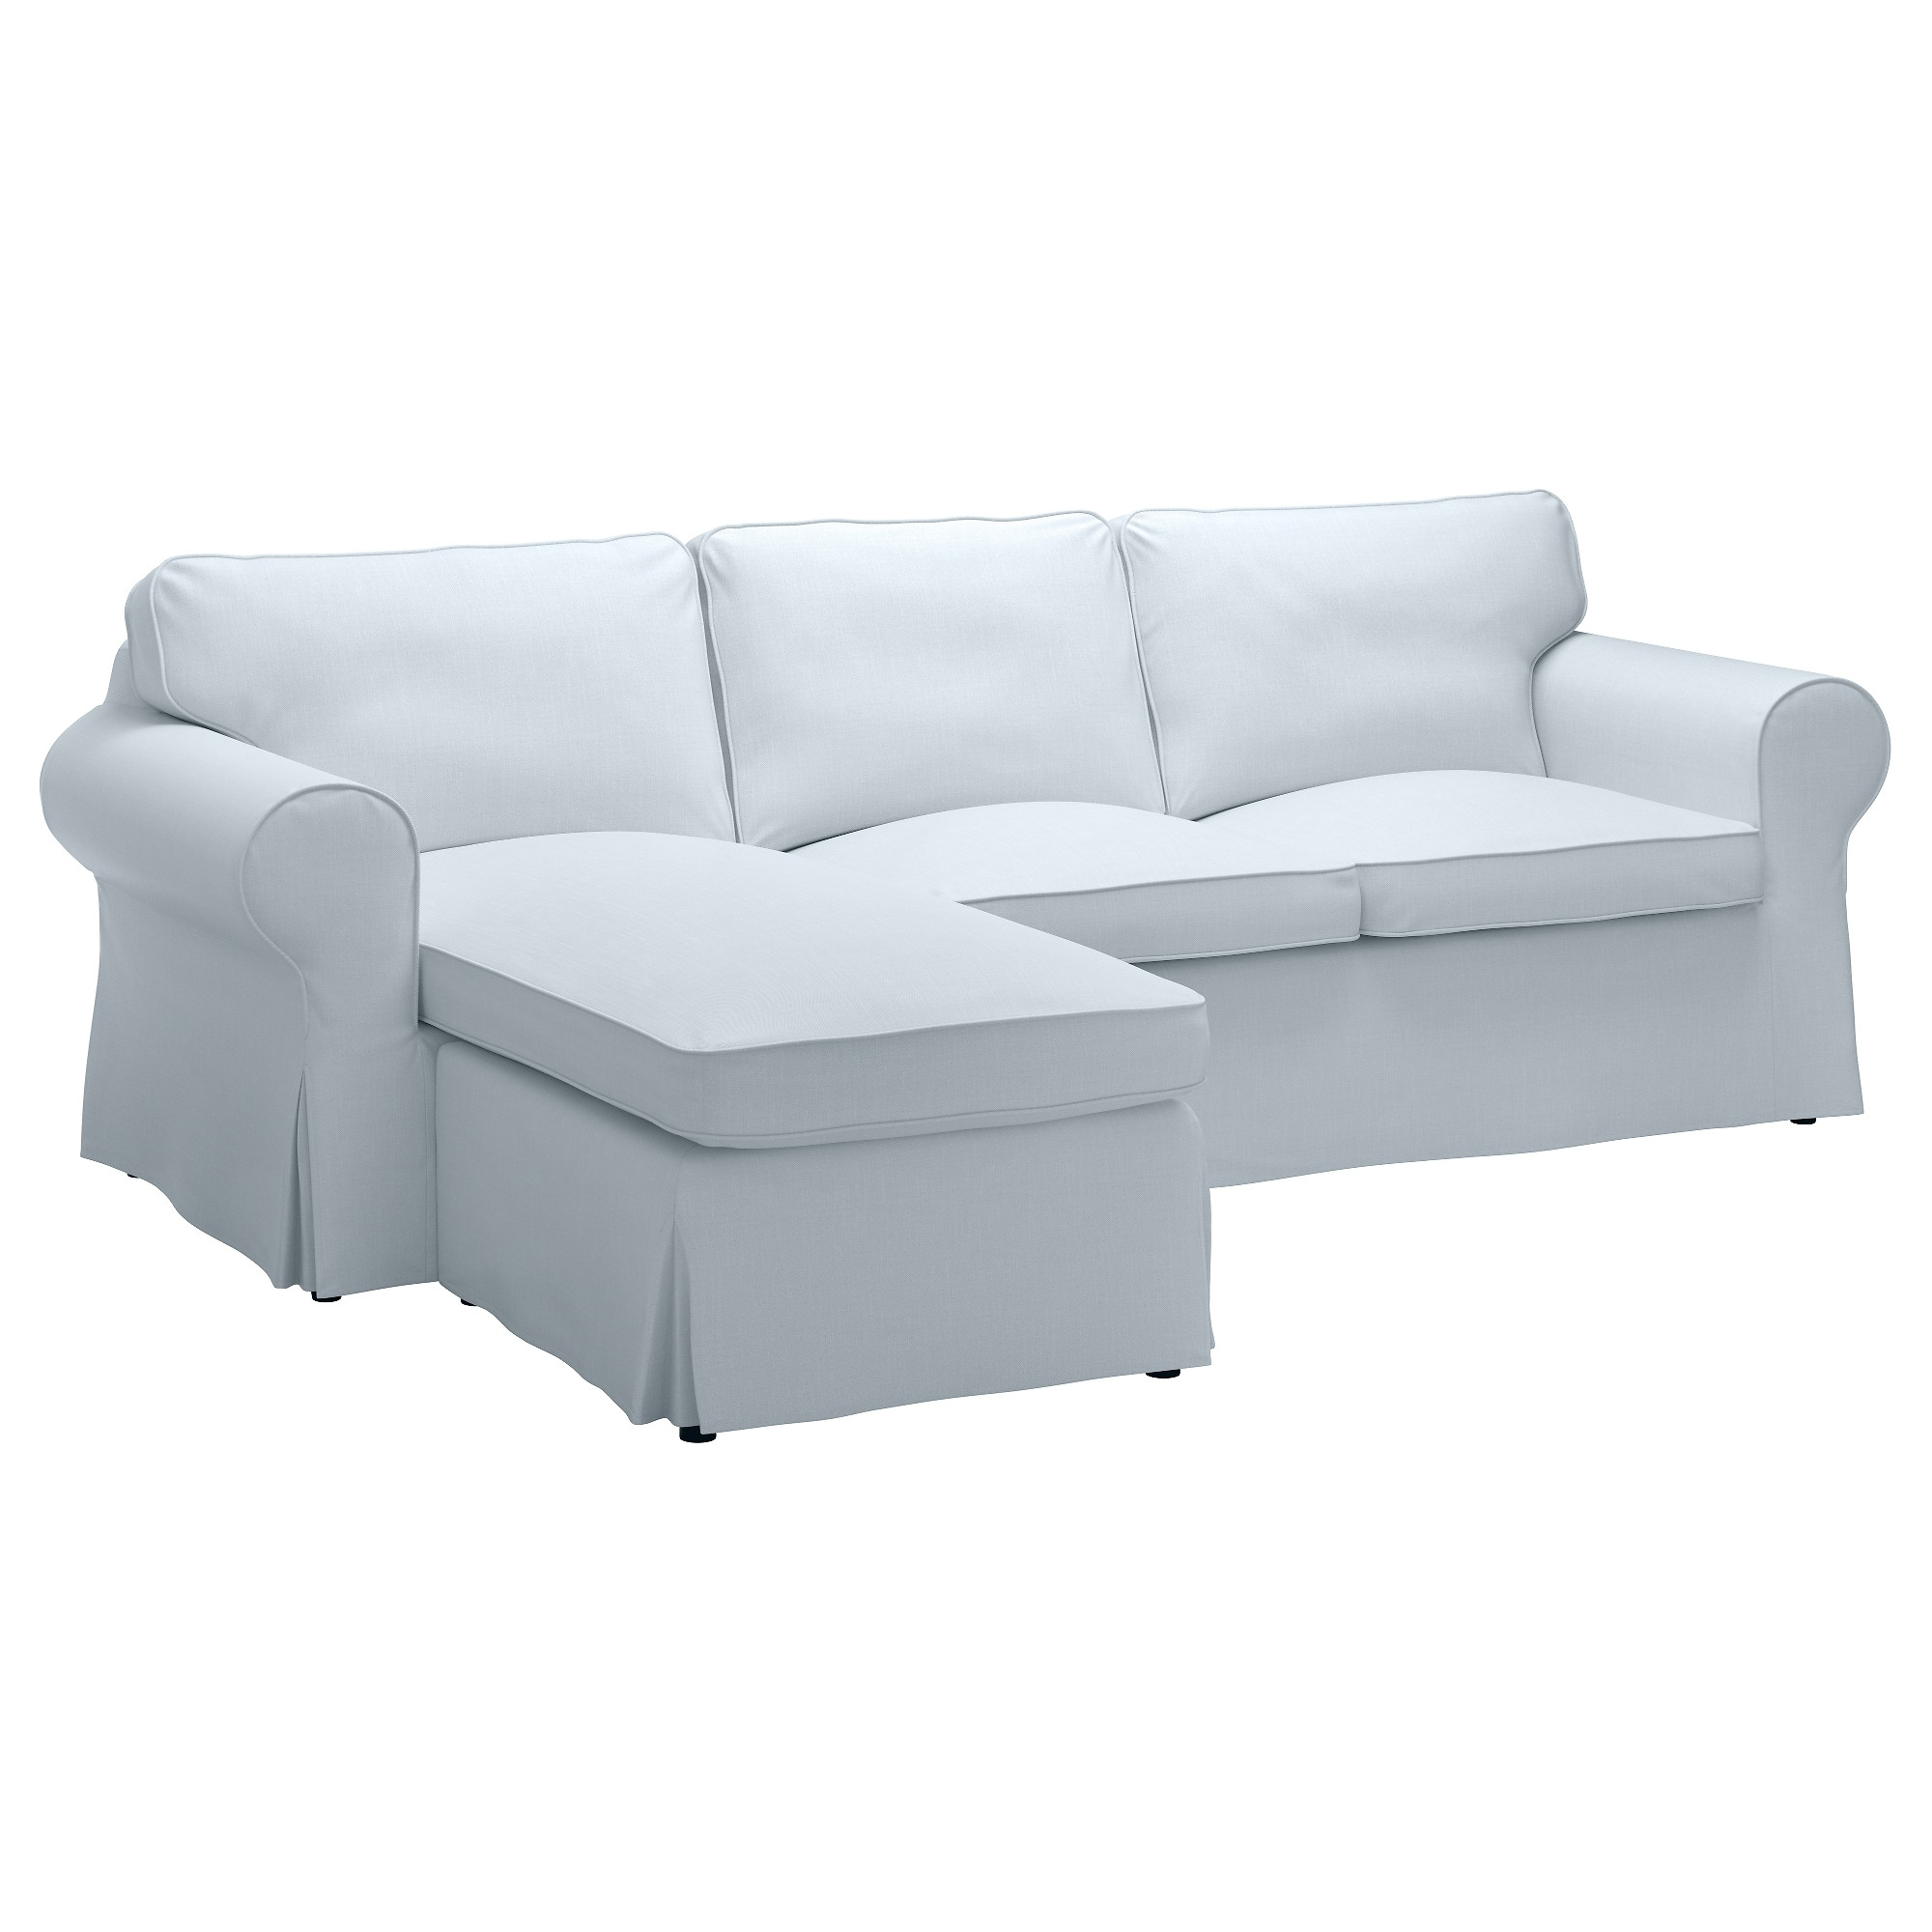 Latest Ektorp Sofa – With Chaise/nordvalla Light Blue – Ikea Within Ikea Sofa Beds With Chaise (View 13 of 15)